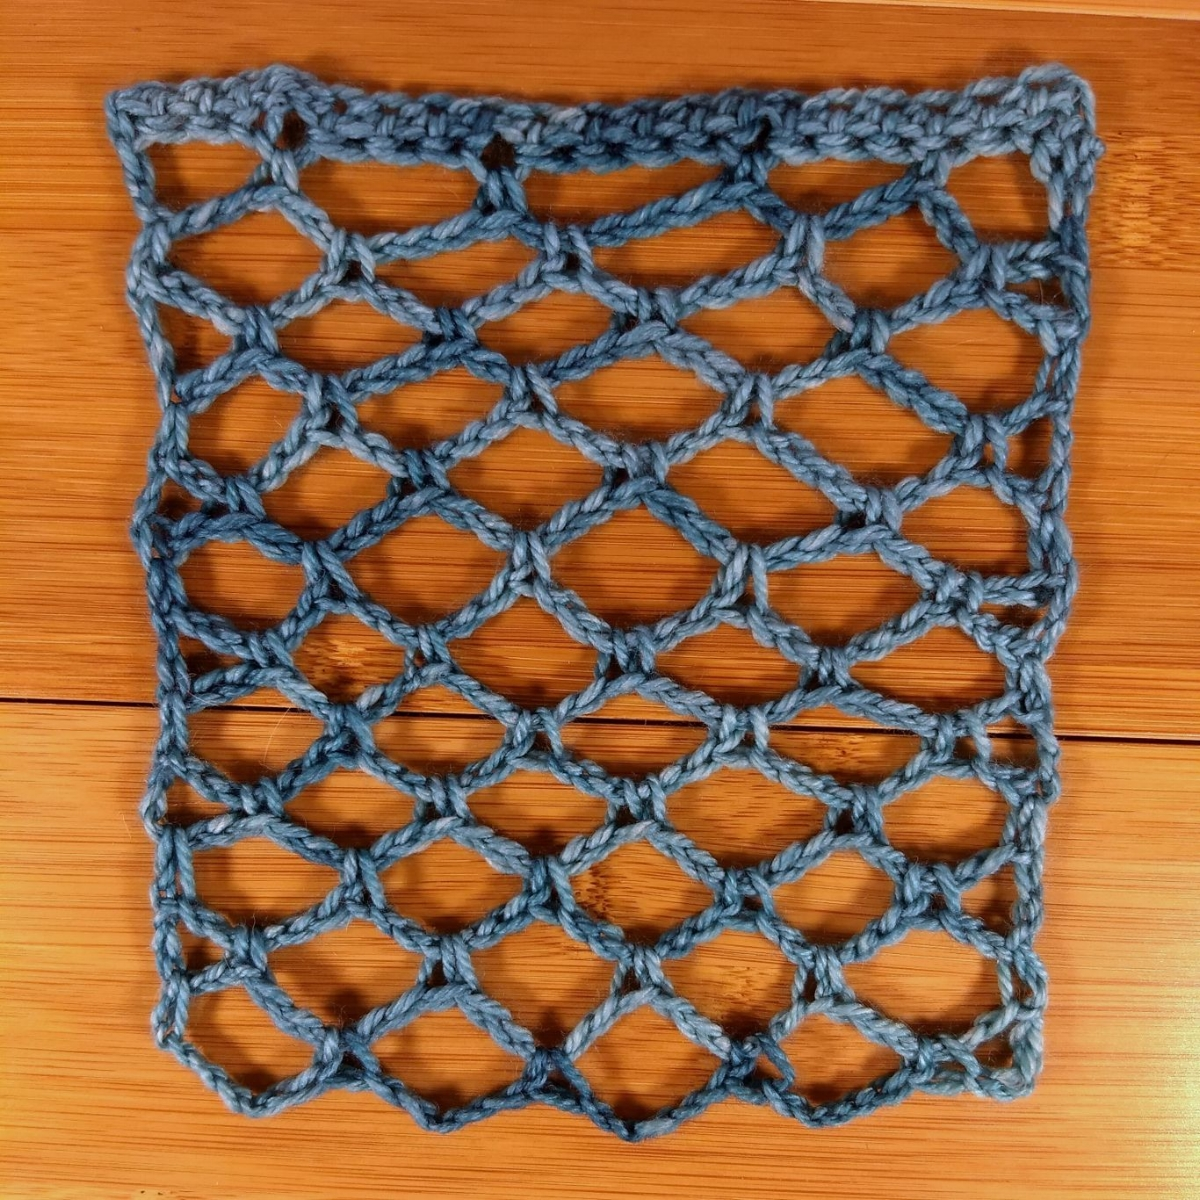 Squishy, crocheted lace swatch